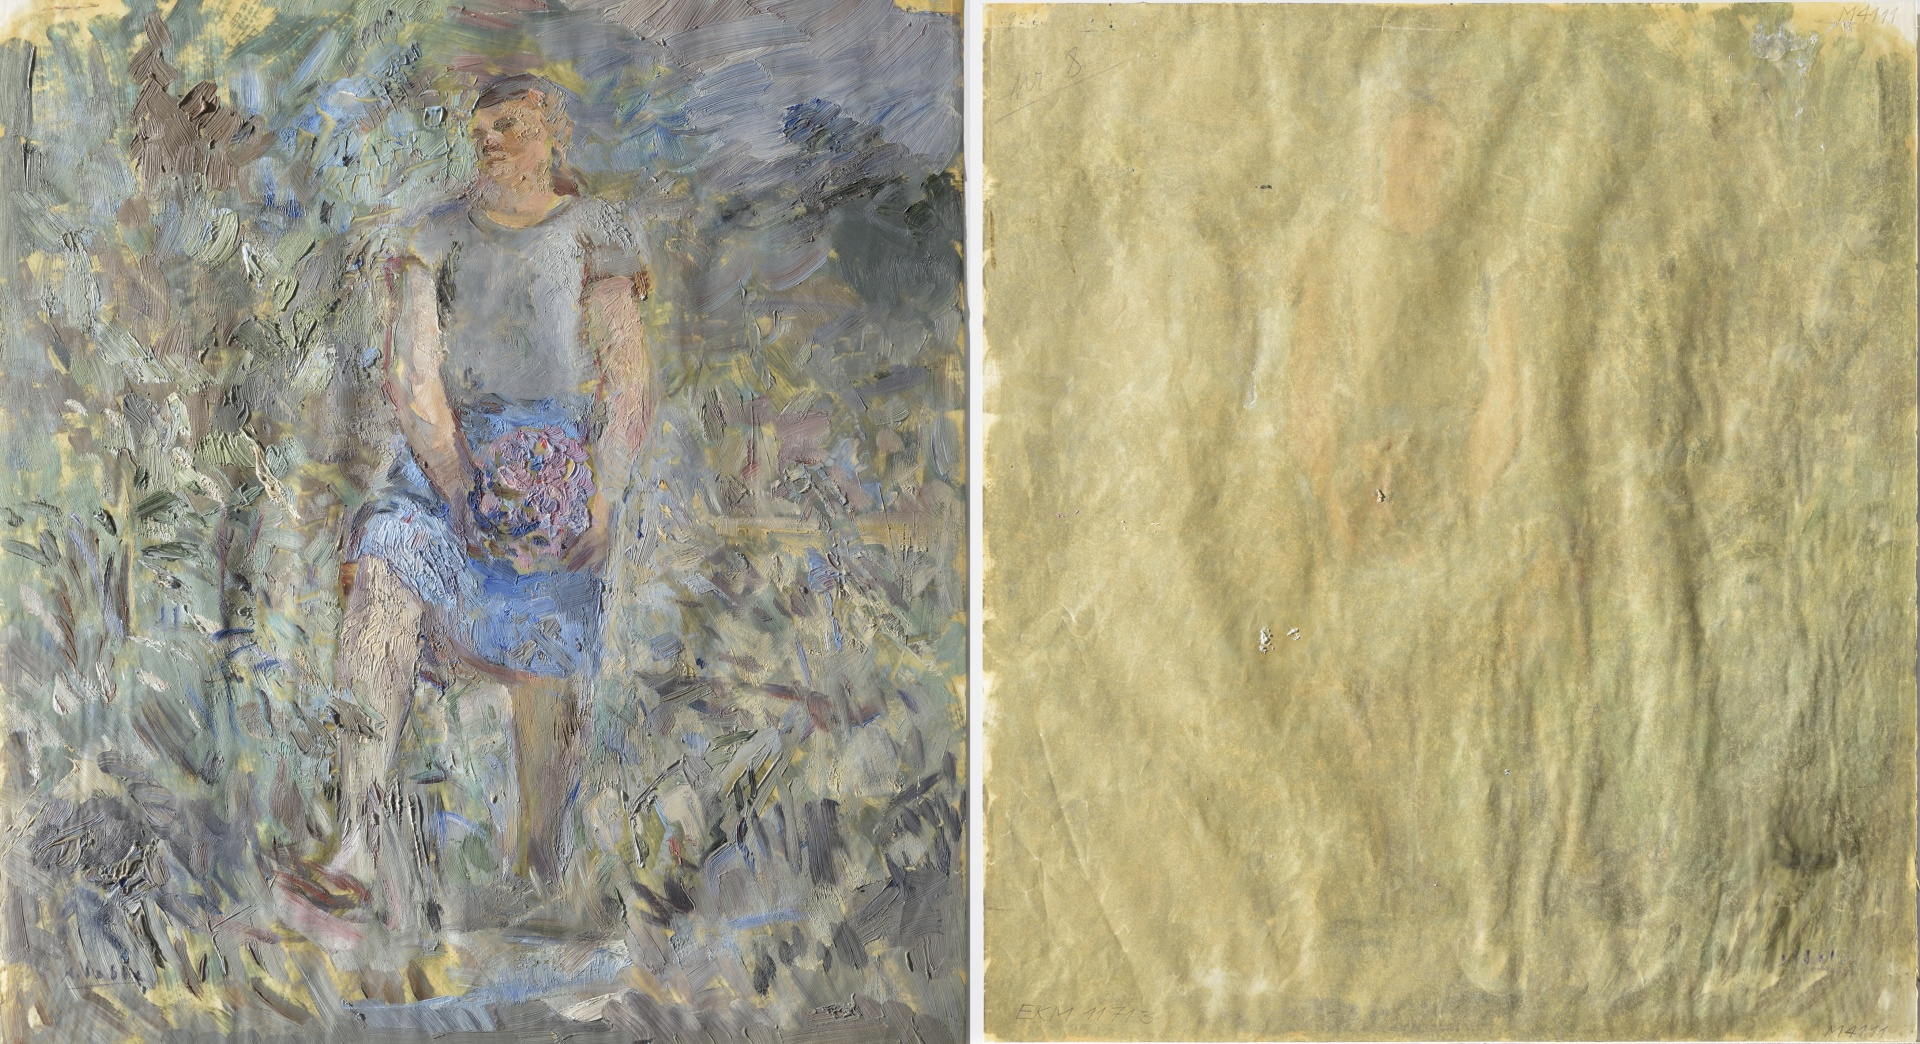 fig 1. A.Vabbe Woman in Landscape, 1936. EKM M 4111. Front and back sides. Thin (0.09mm) and extremely fragile paper of deciduous trees cellulose (with addition of flax and hemp fibres), no lignin. Slight shedding of paint and losses on tops of the break-lines. Photo Stanislav Stepashko